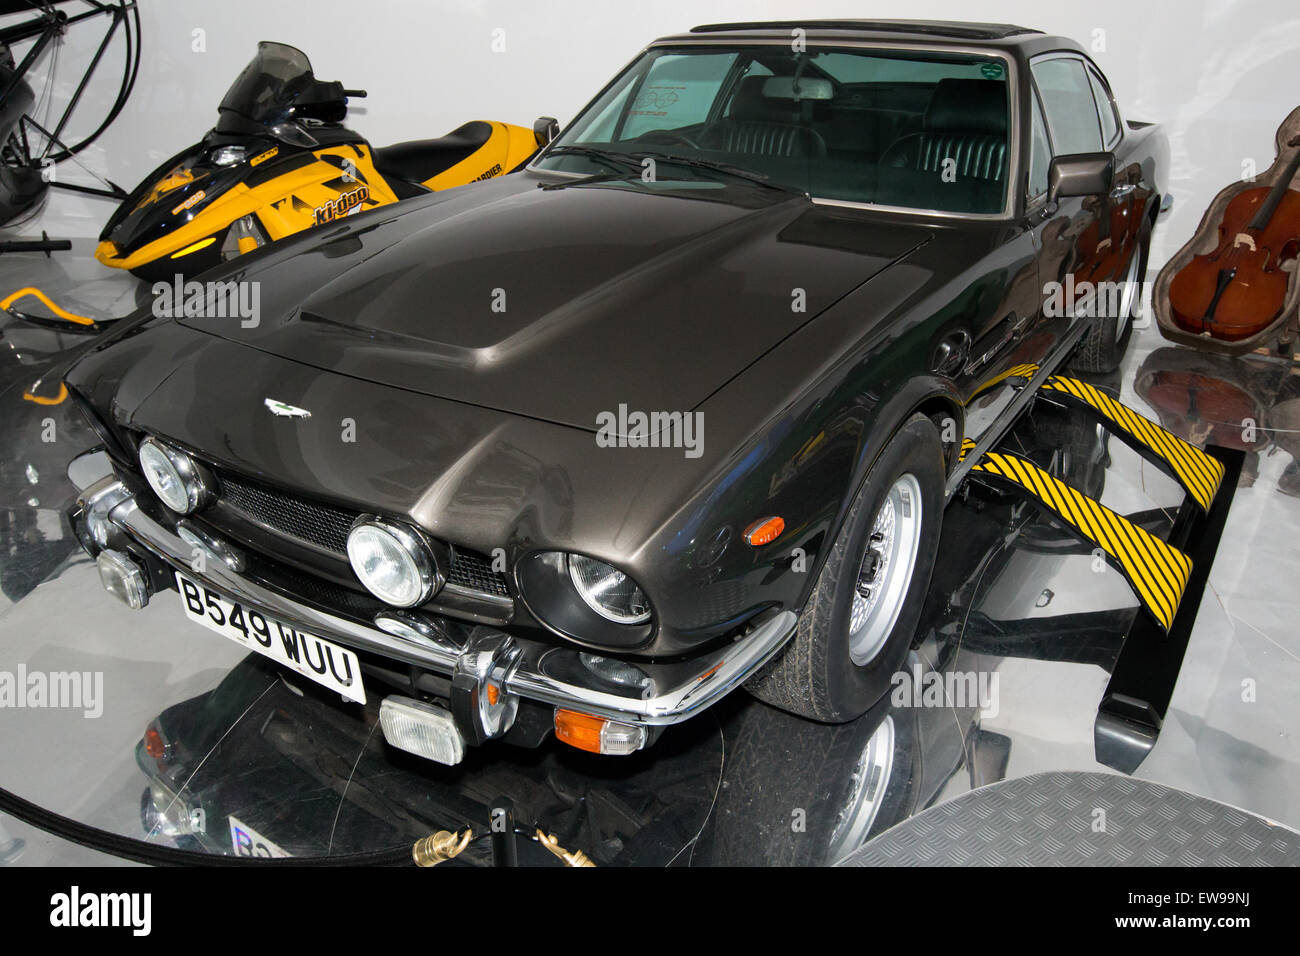 Aston Martin V8 (The Living Daylights) National Motor Museum, Beaulieu - Stock Image